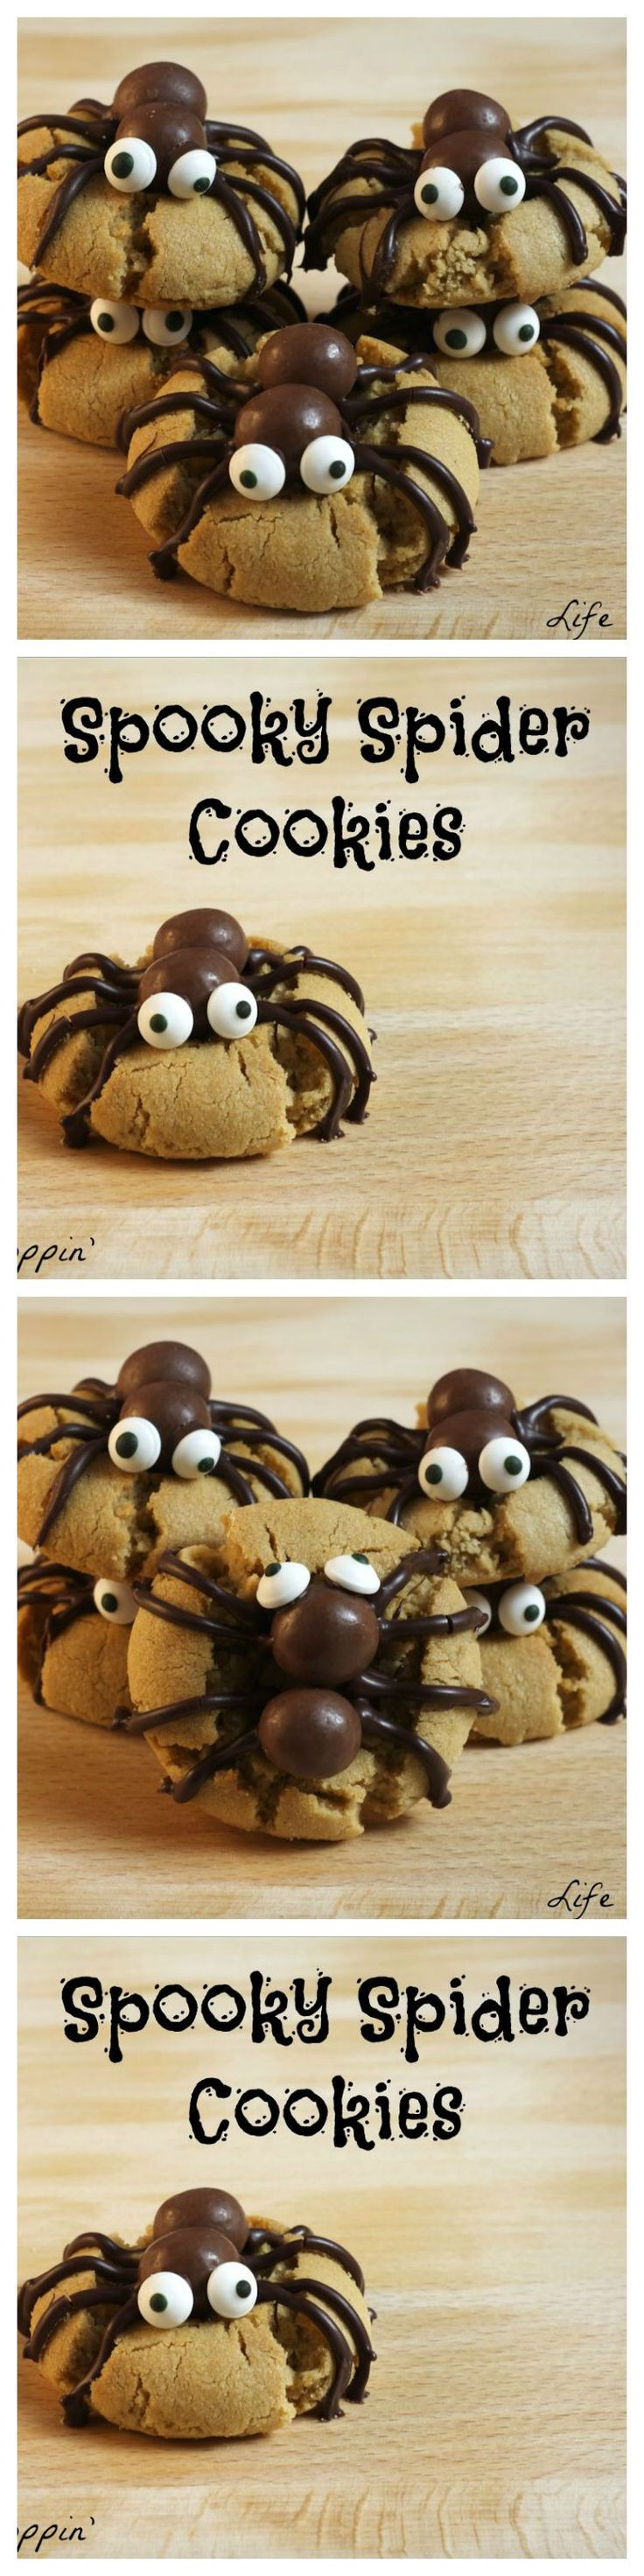 engagement ring setting Spooky Spider Cookies